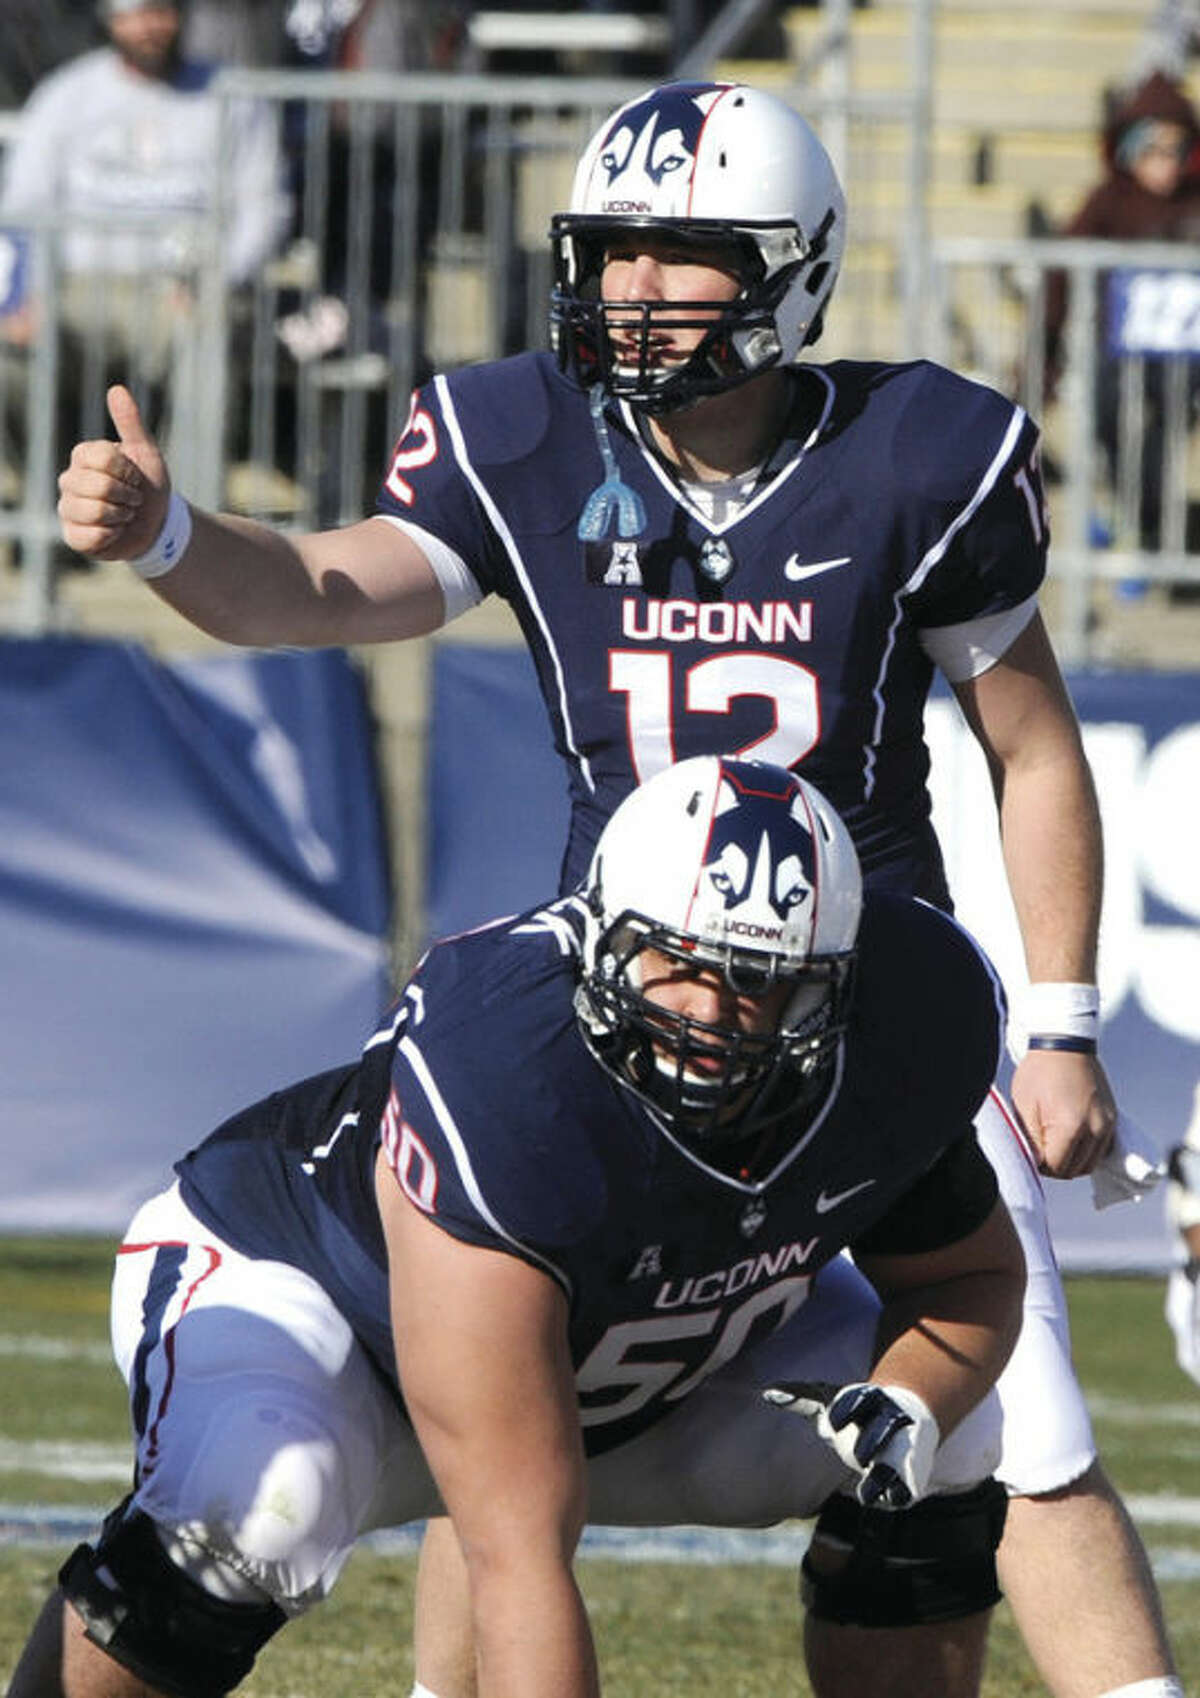 AP photo Connecticut quarterback Casey Cochran (12) signals while guard Tyler Bullock (50) looks on during the first half of Saturday's game against Rutgers at Rentschler Field. Almost forgotten for a year-and-a-half, Cochran has taken over as UConn's starter and led the Huskies to a pair of victories.